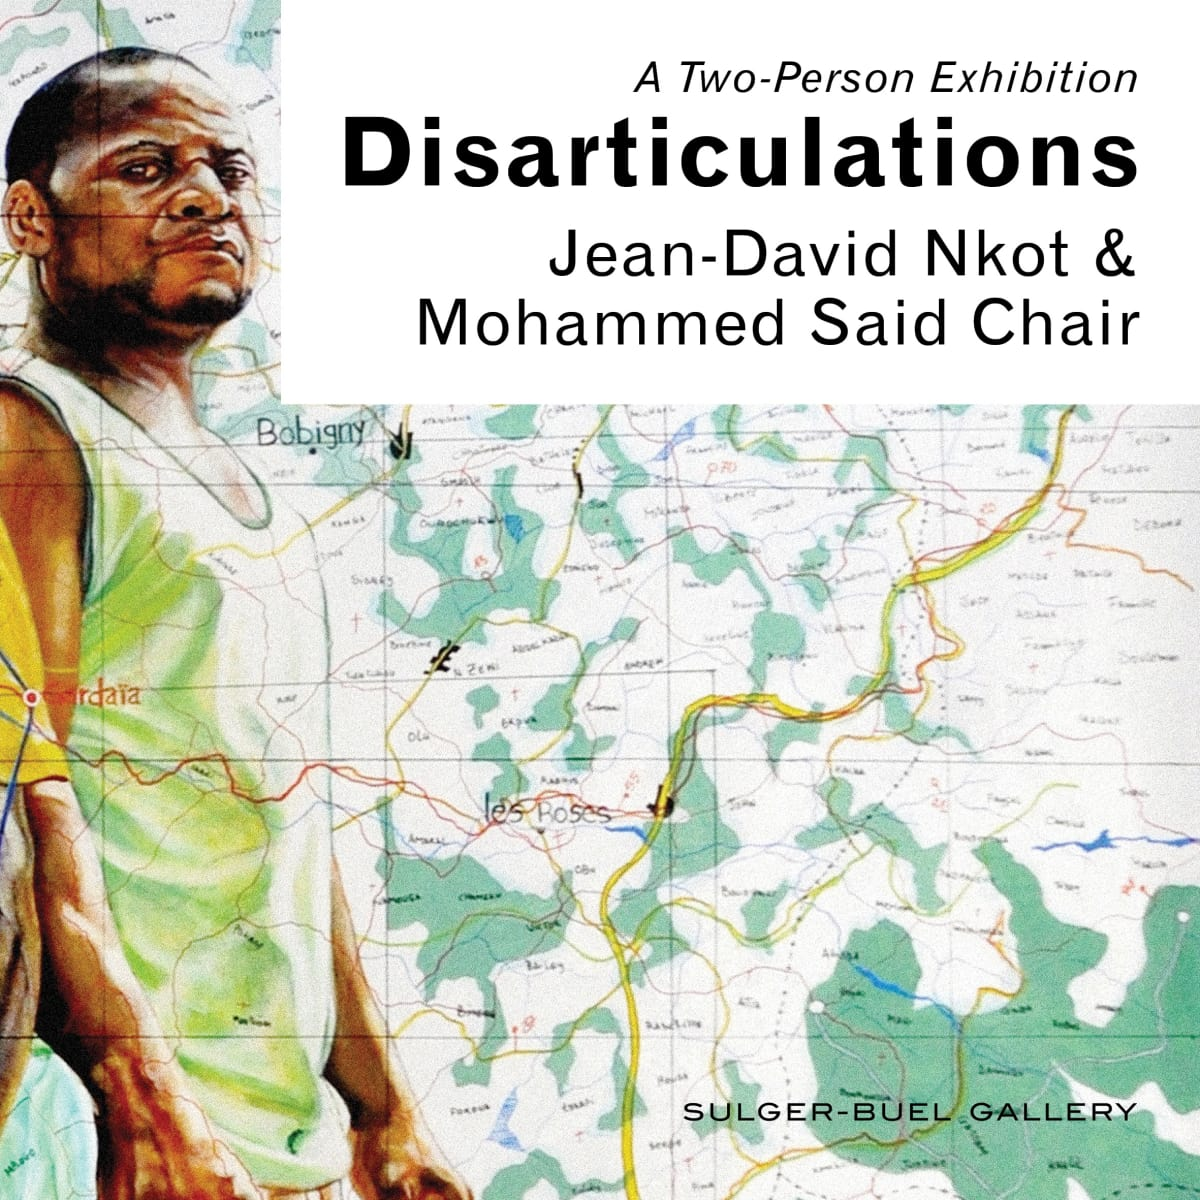 Jean-David Nkot & Mohamed Said Chair 'Disarticulations'